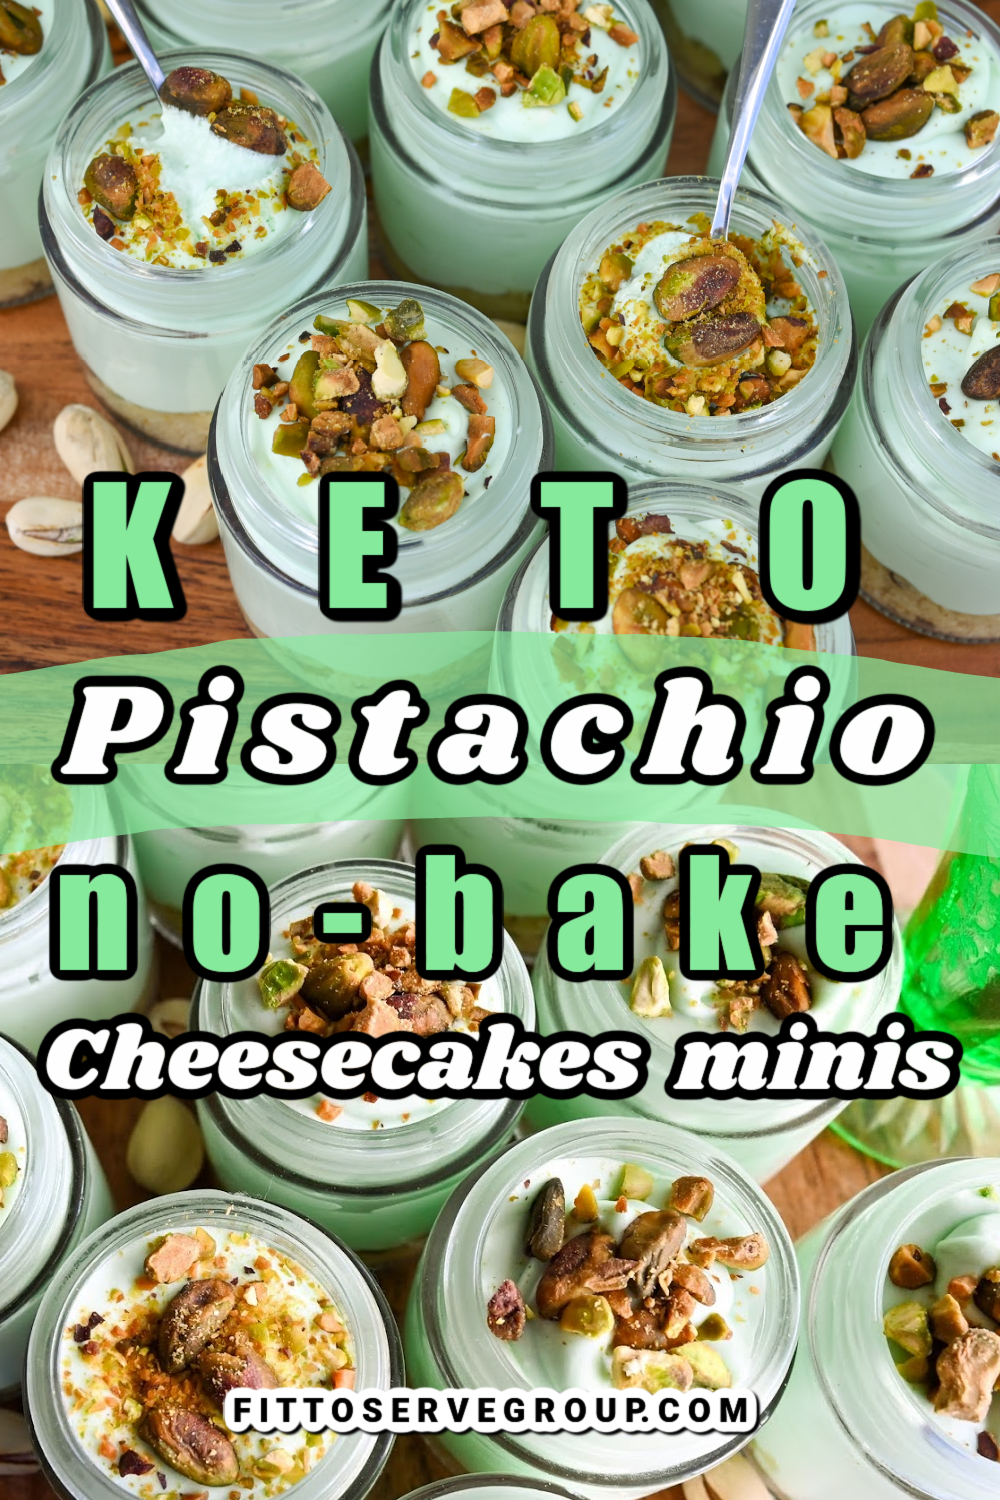 keto pistachio no-bake cheesecake minis long pin